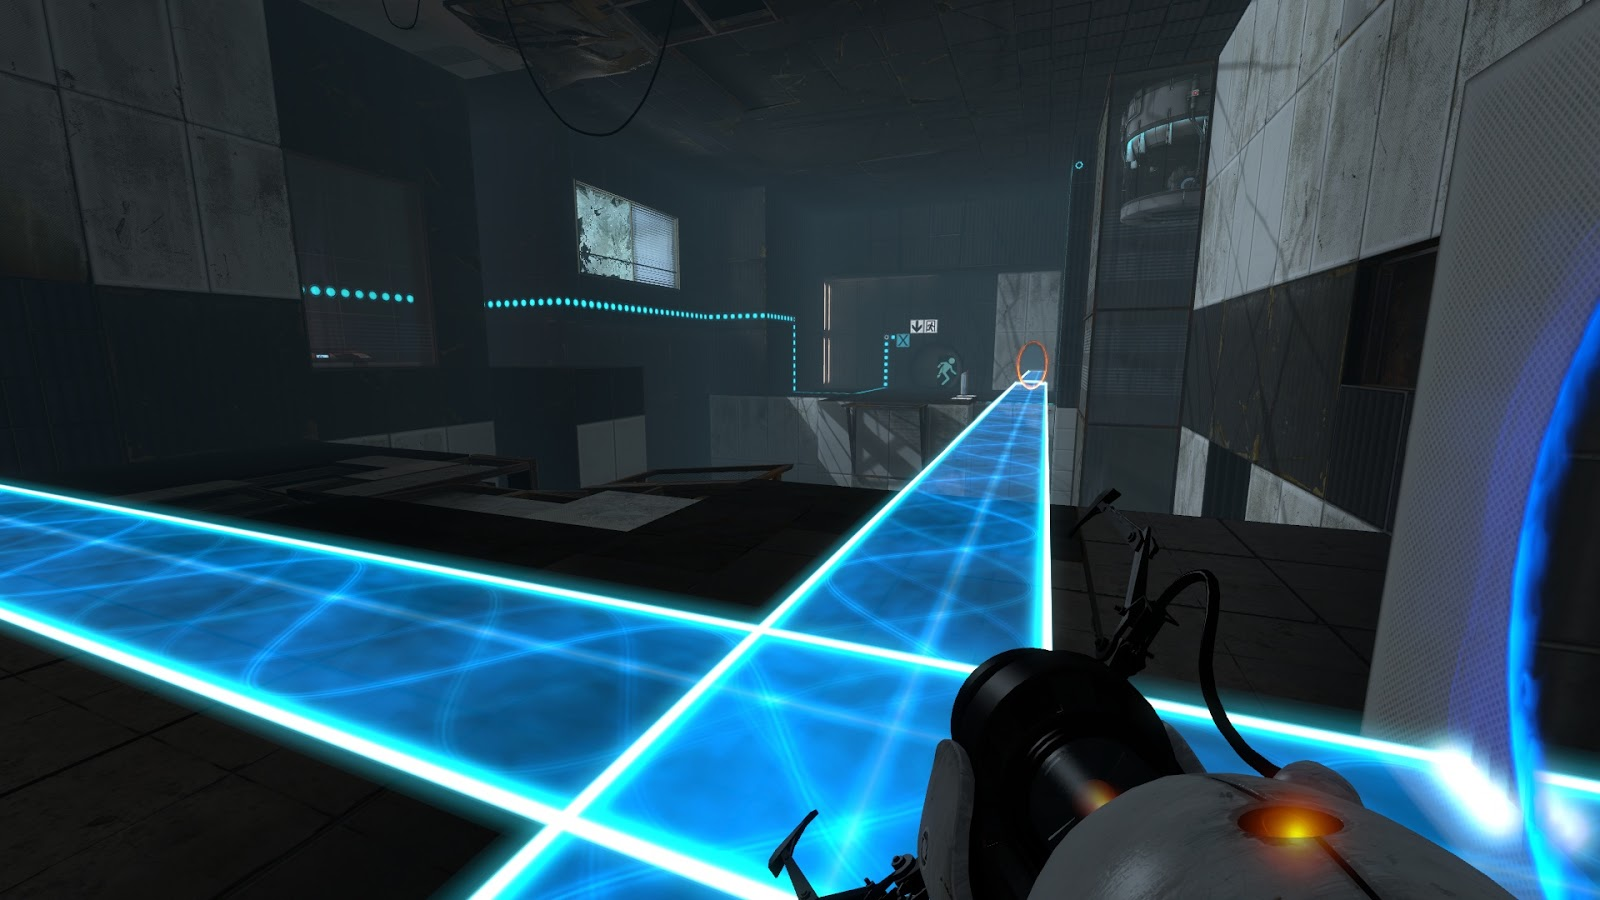 Portal 2 made use of several interesting new game mechanics